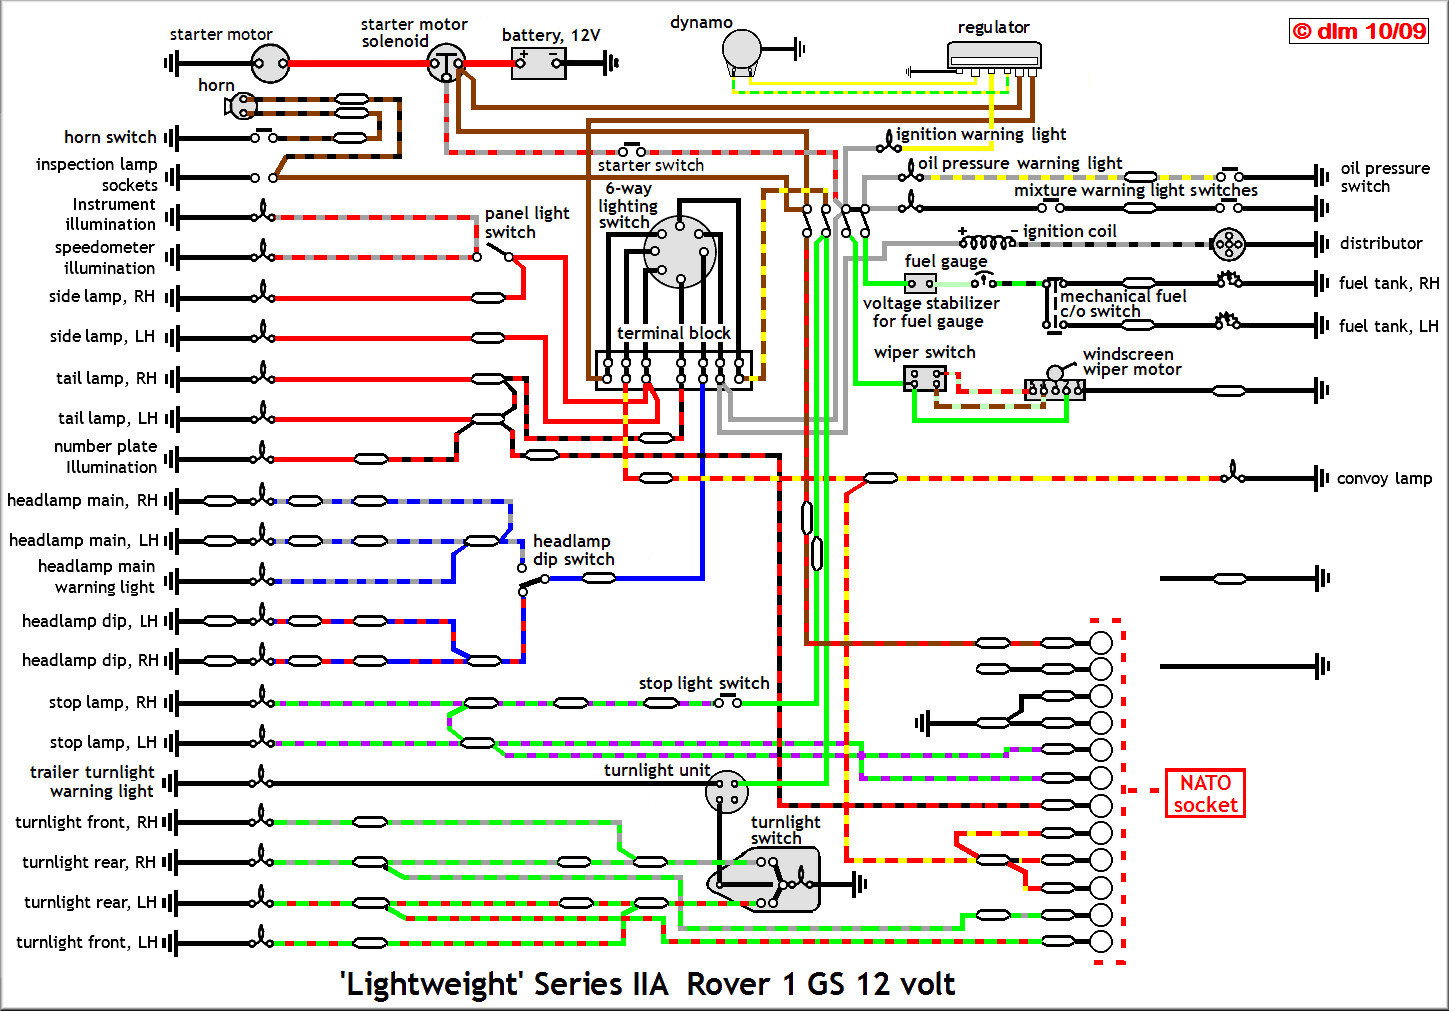 Rover 1 Diagram land rover owner \u2022 view topic indicator wiring land rover freelander 2 wiring diagram at reclaimingppi.co